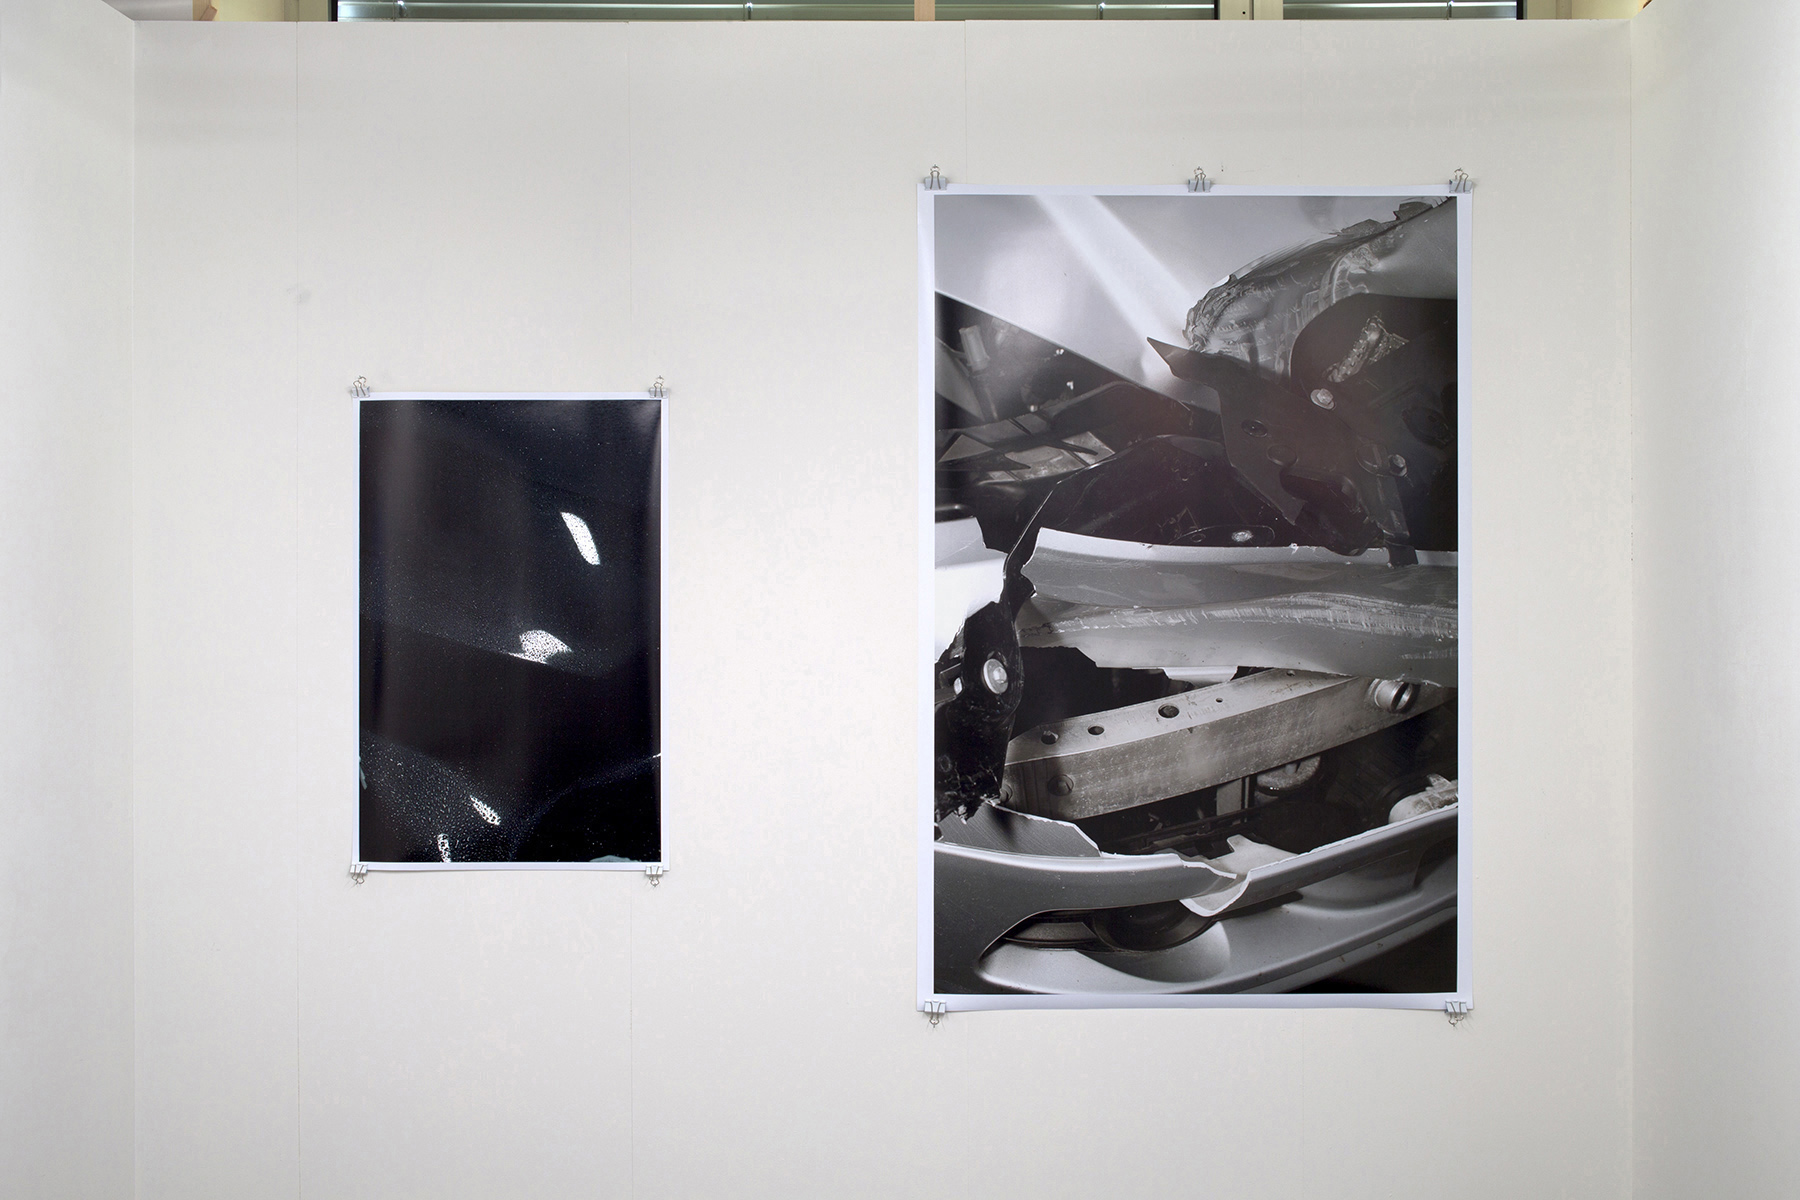 Chris Drange, Christoph David Drange, Shape Shifter, PHANTOM, PALLADIUM, Crash Installation view, Photo Bastei, exhibition